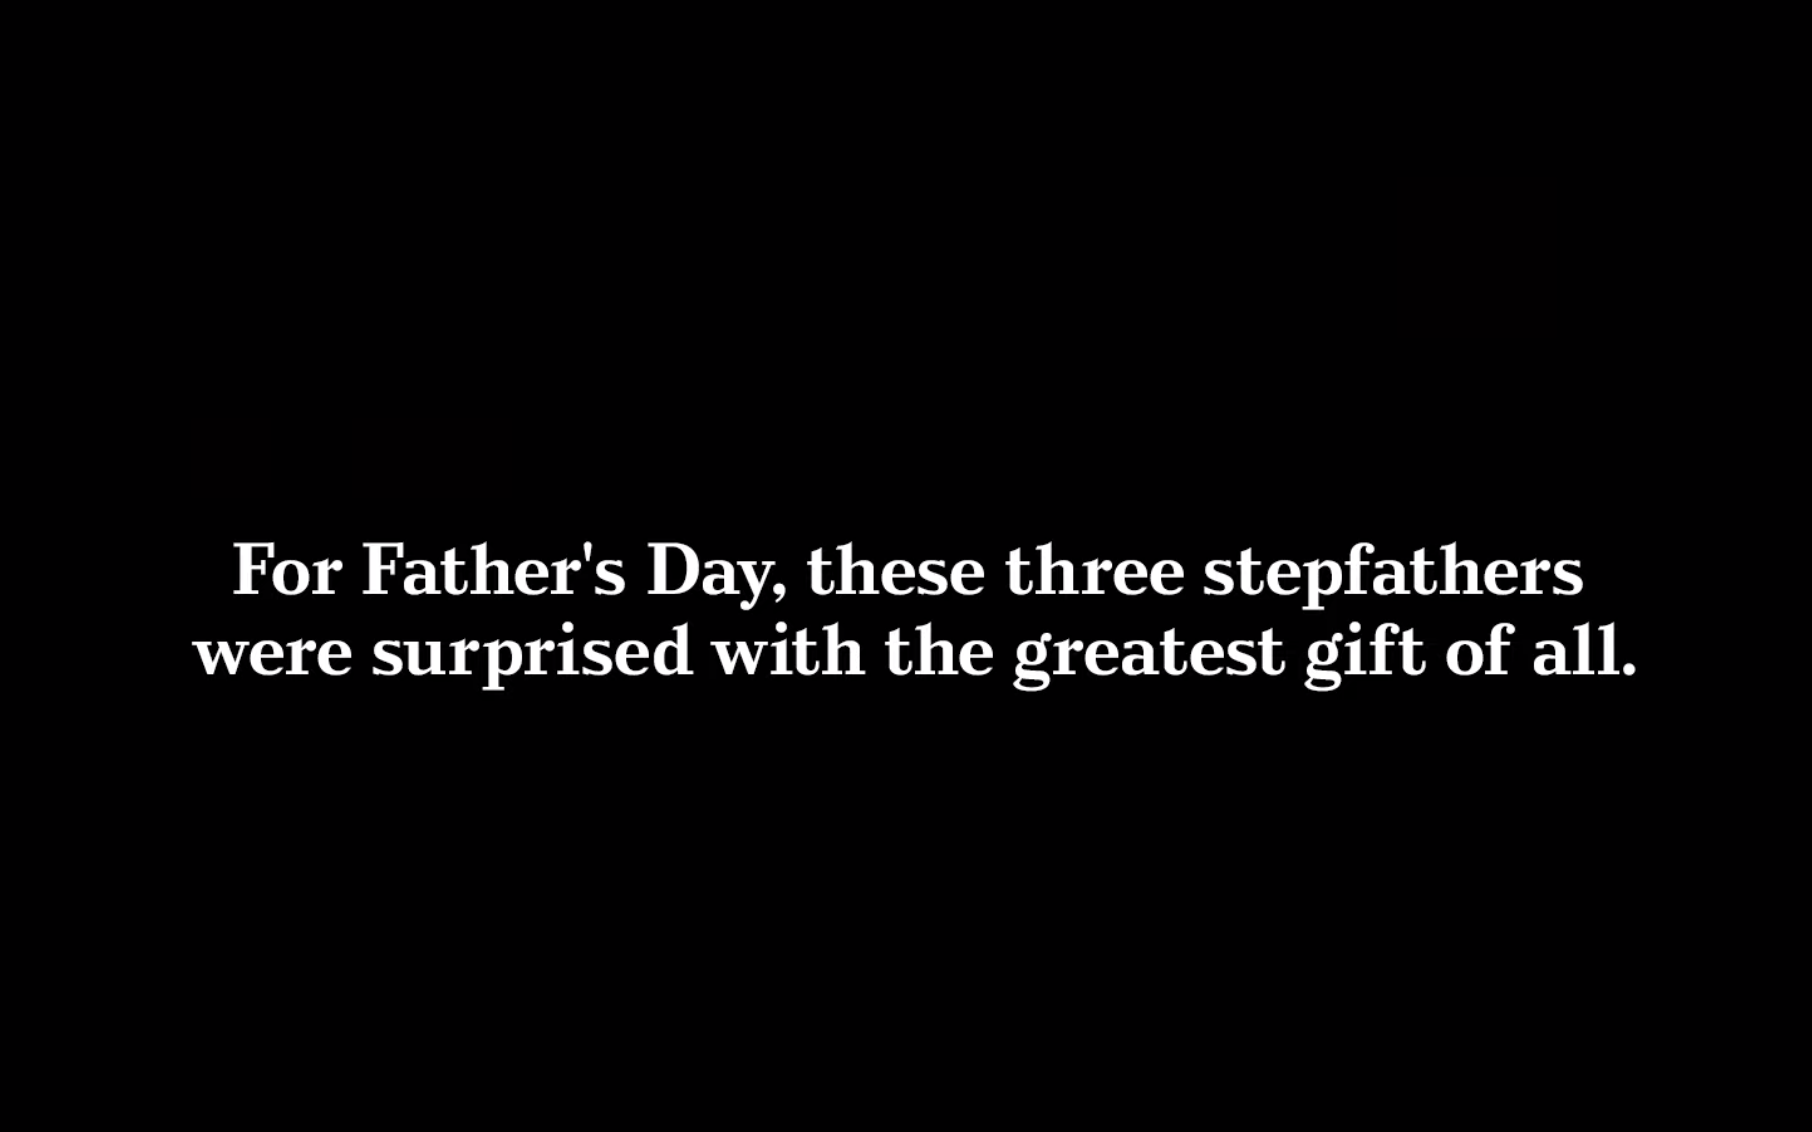 Budweiser pays tribute to all the stepdads this Father's Day:Details ahead